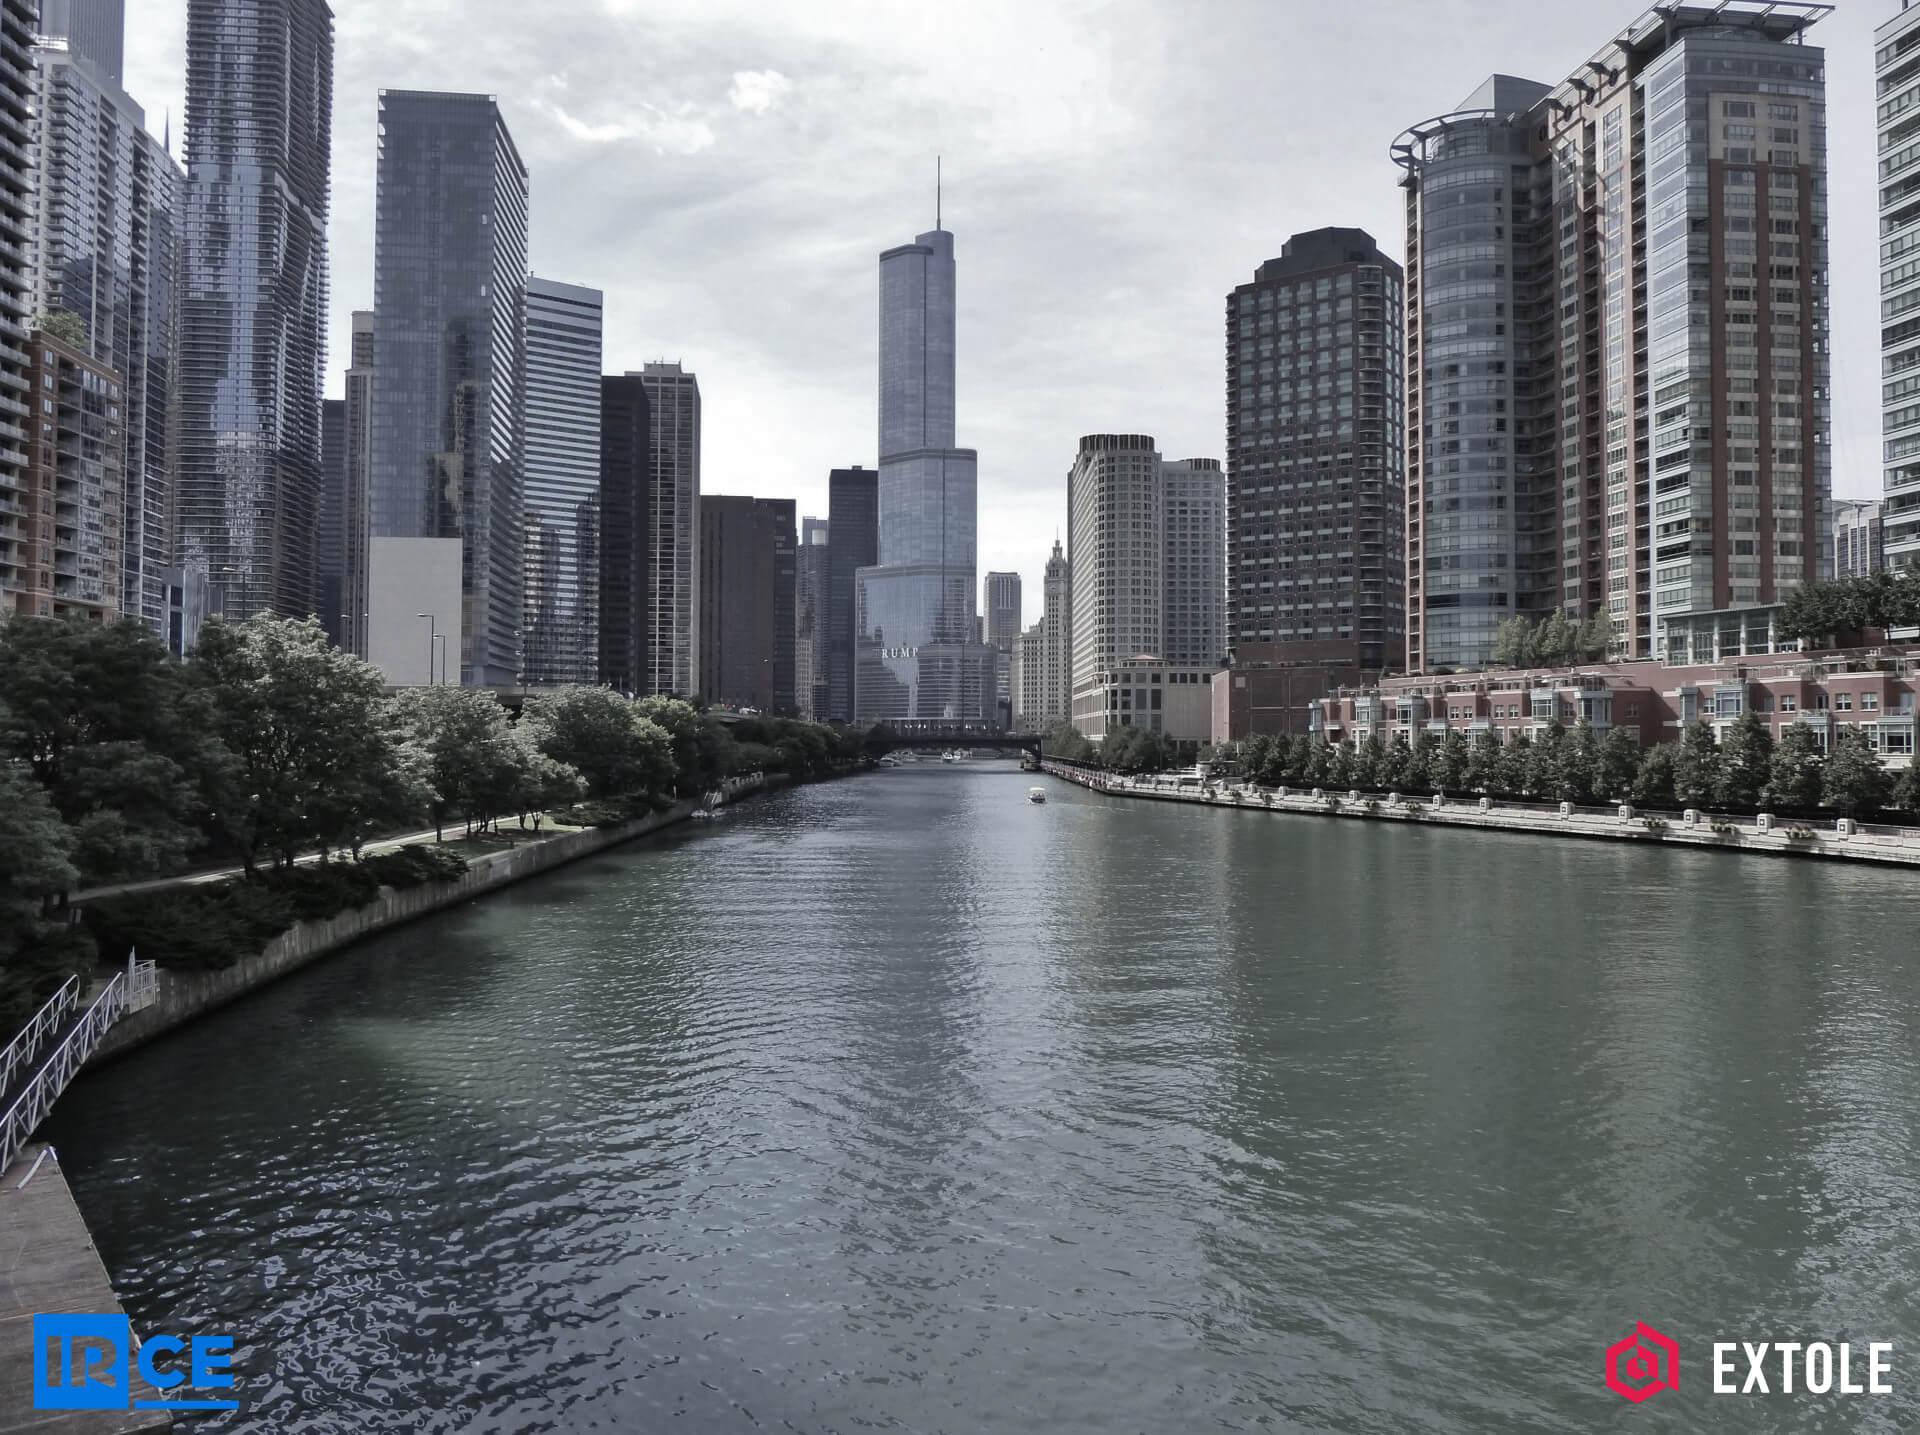 The Chicago River for IRCE & Extole